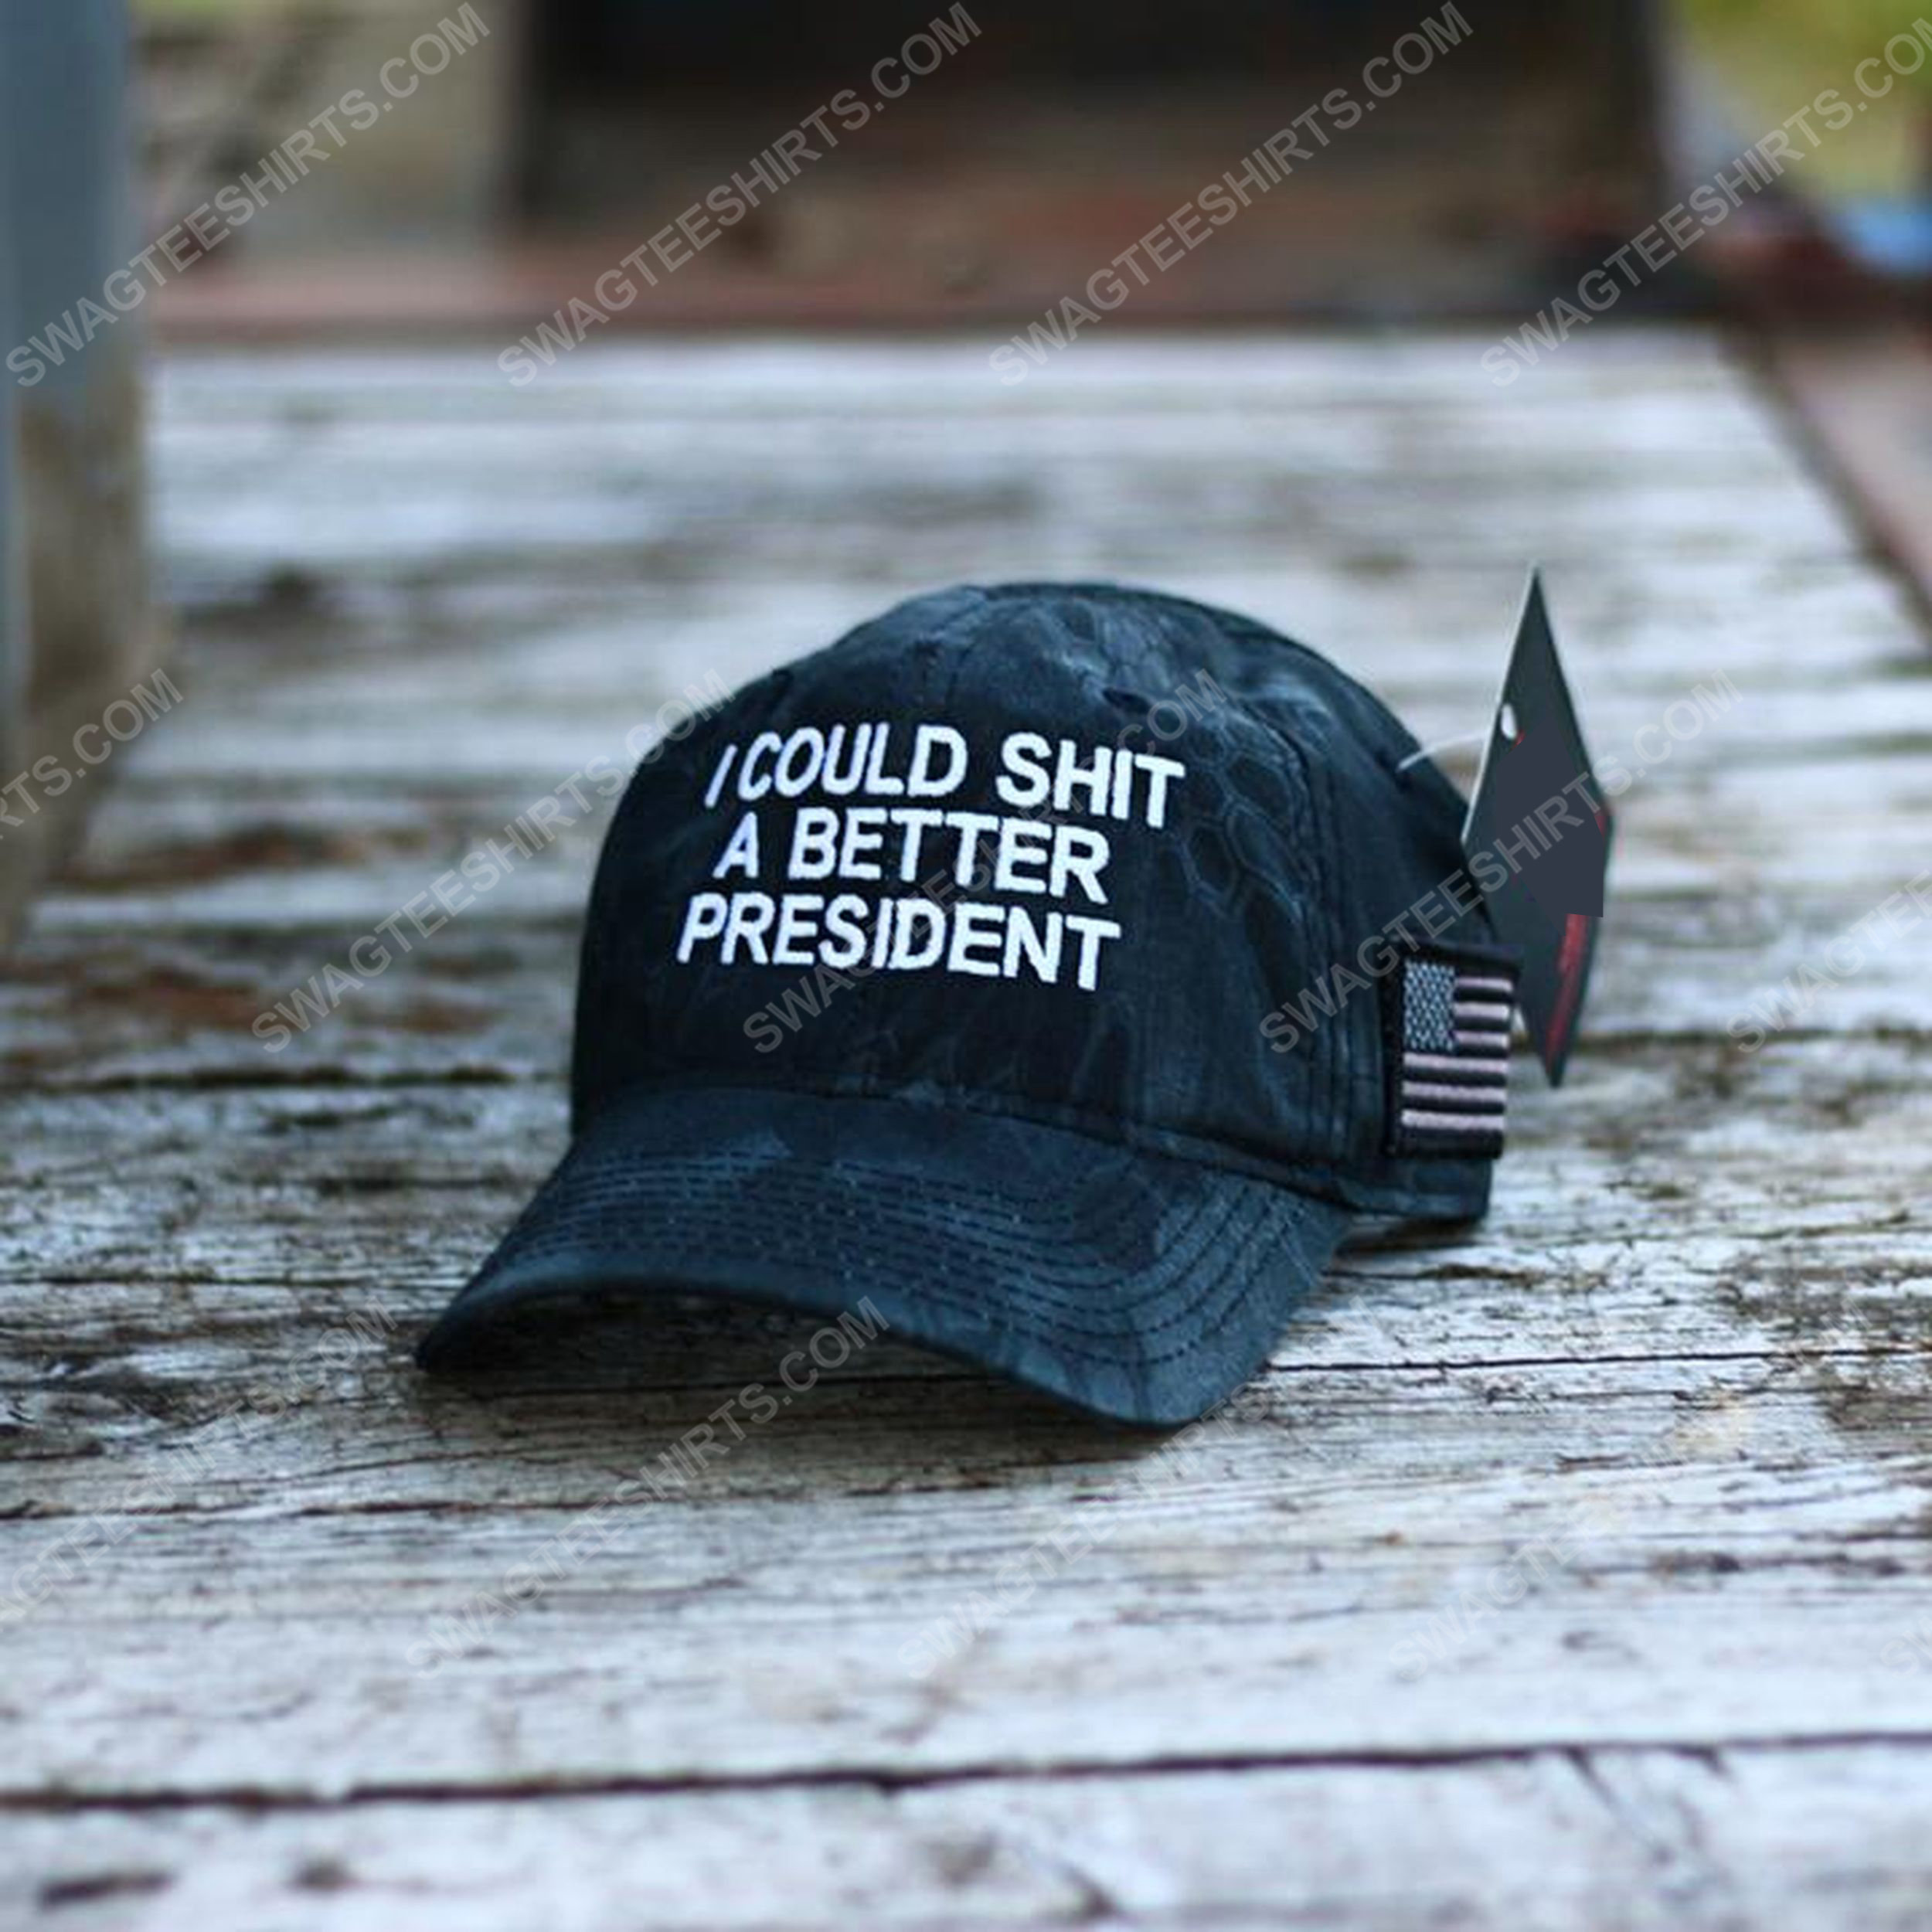 I could shit a better president full print classic hat 1 - Copy